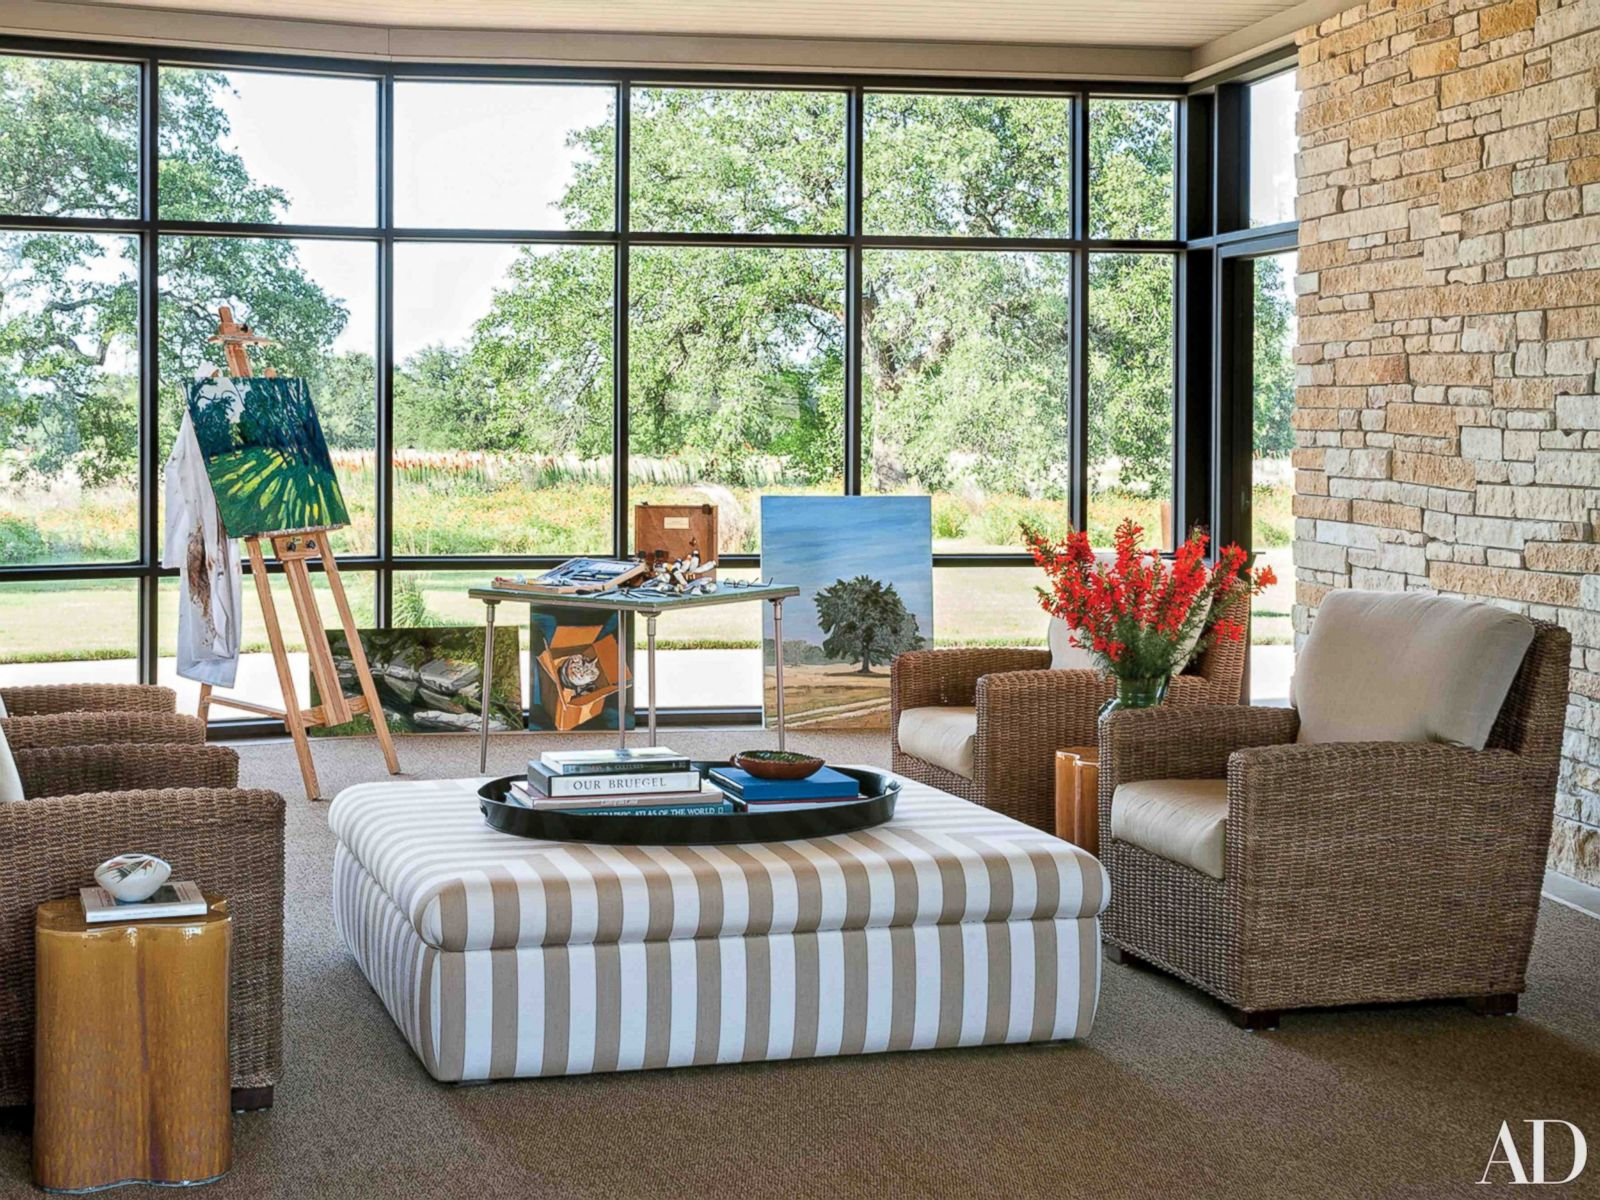 A Rare Look Inside George W. Bush's Texas Ranch